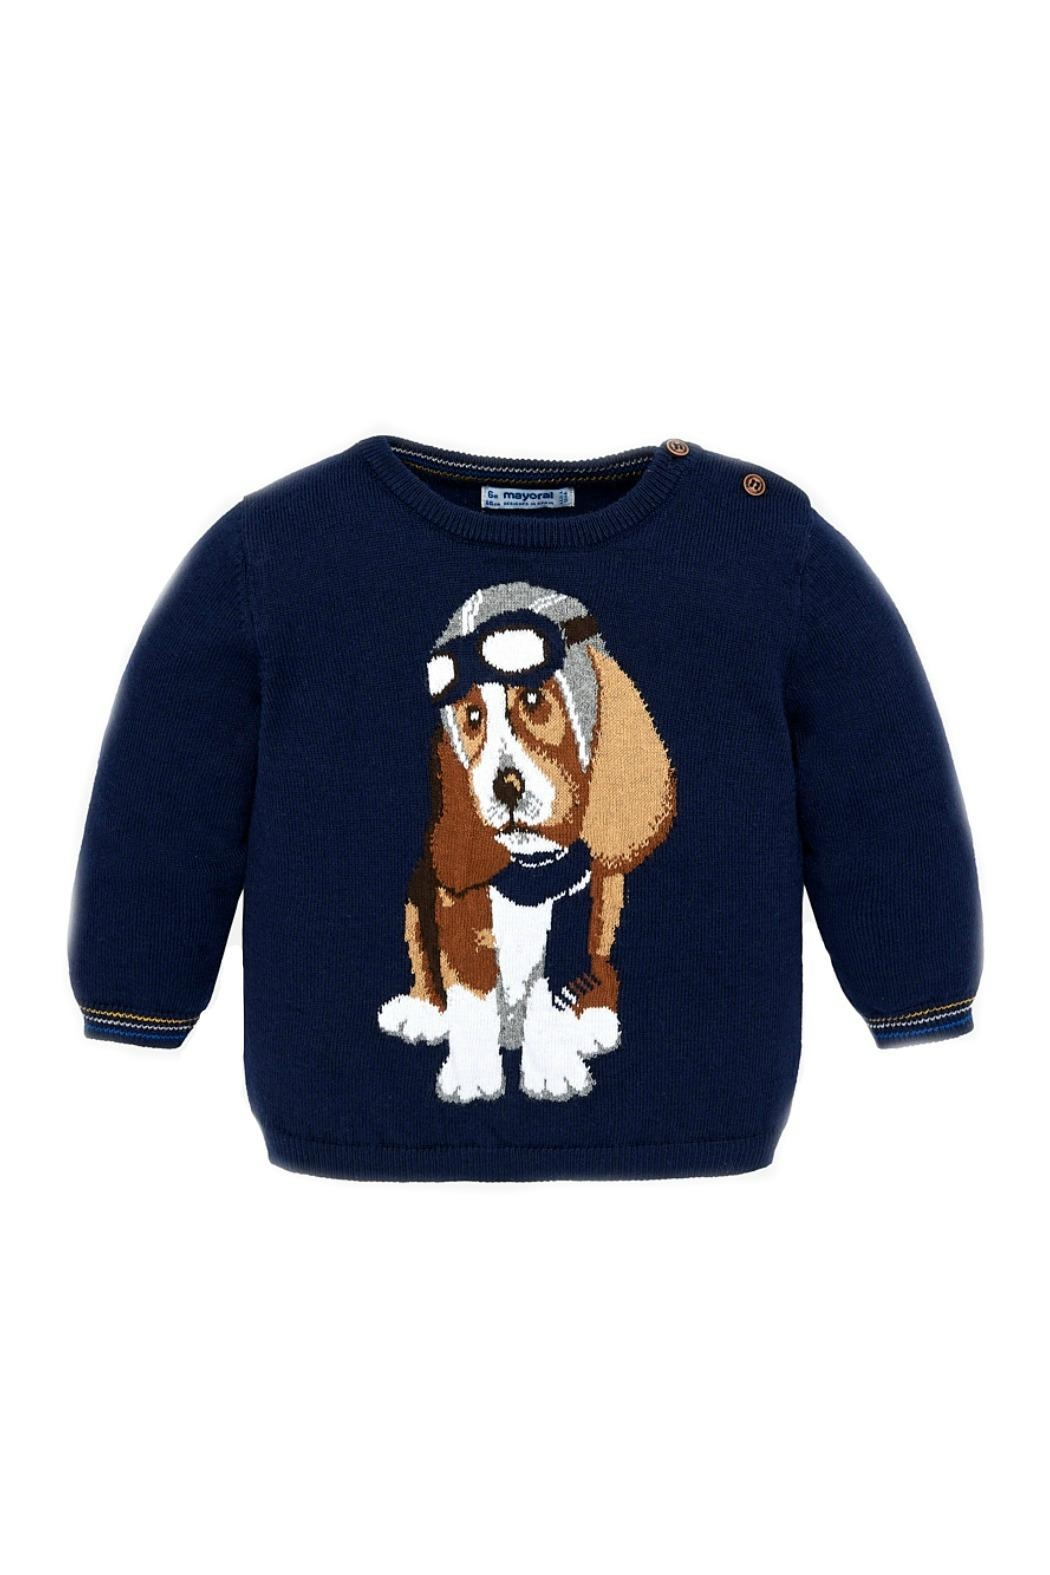 Mayoral Baby-Boy-Fighter-Pilot-Dog-Sweater - Main Image